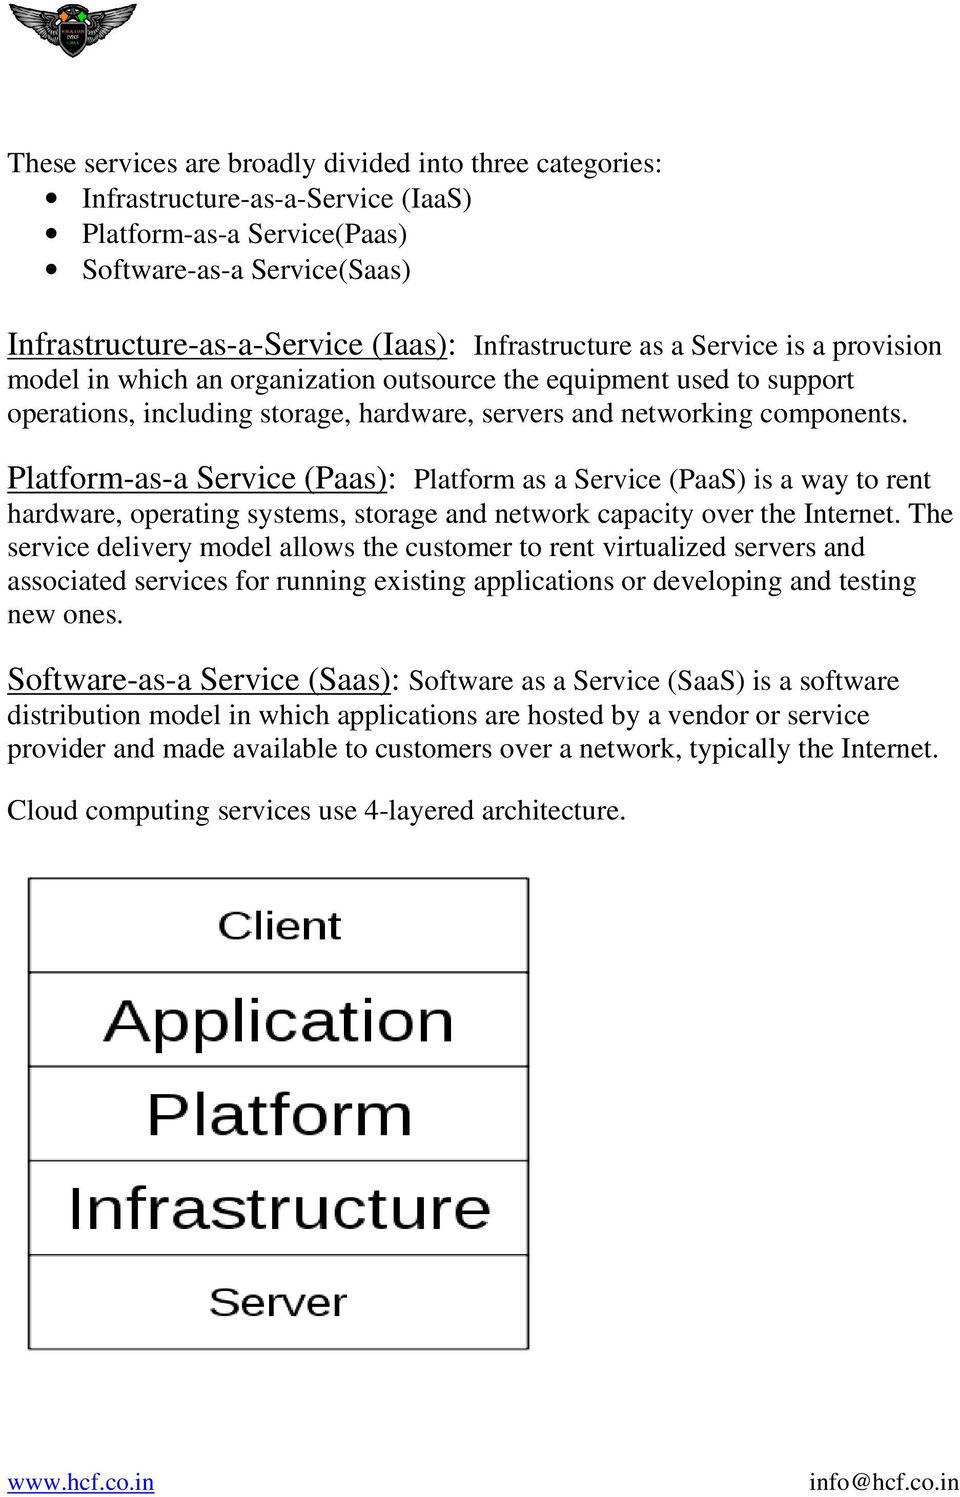 Platform-as-a Service (Paas): Platform as a Service (PaaS) is a way to rent hardware, operating systems, storage and network capacity over the Internet.